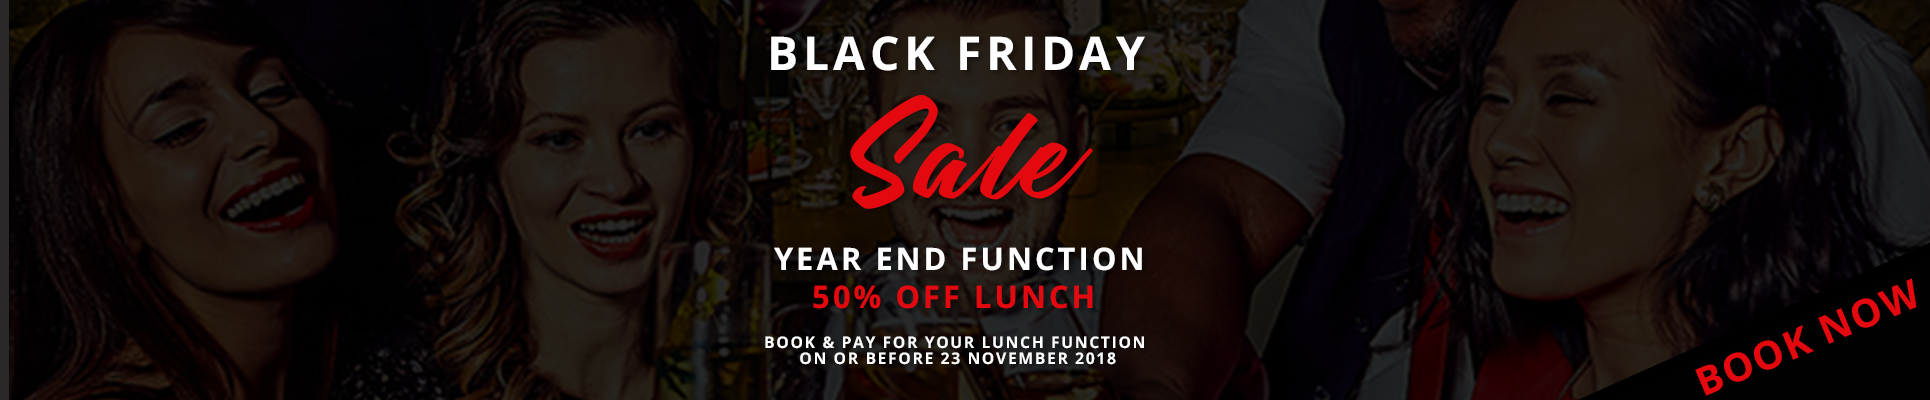 Carnivore Restaurant Year End Functions - Early Bird Special